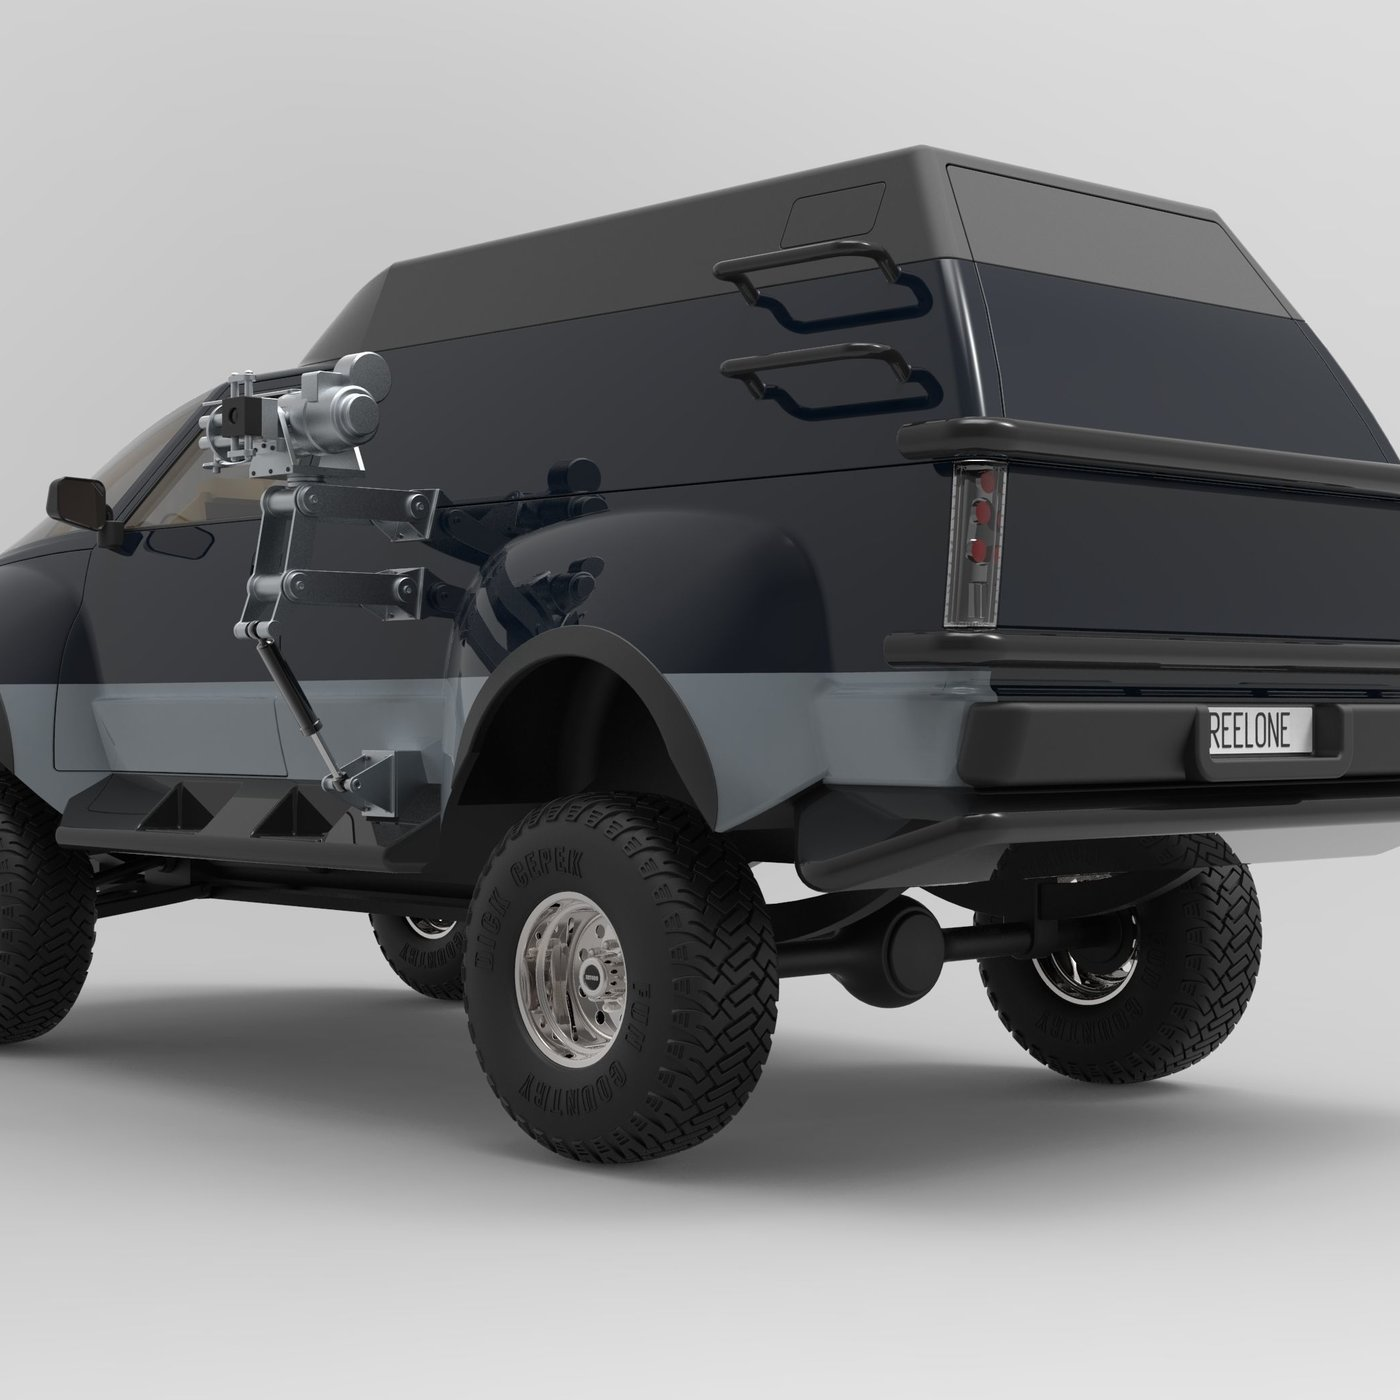 RV from Hell from Tango and Cash